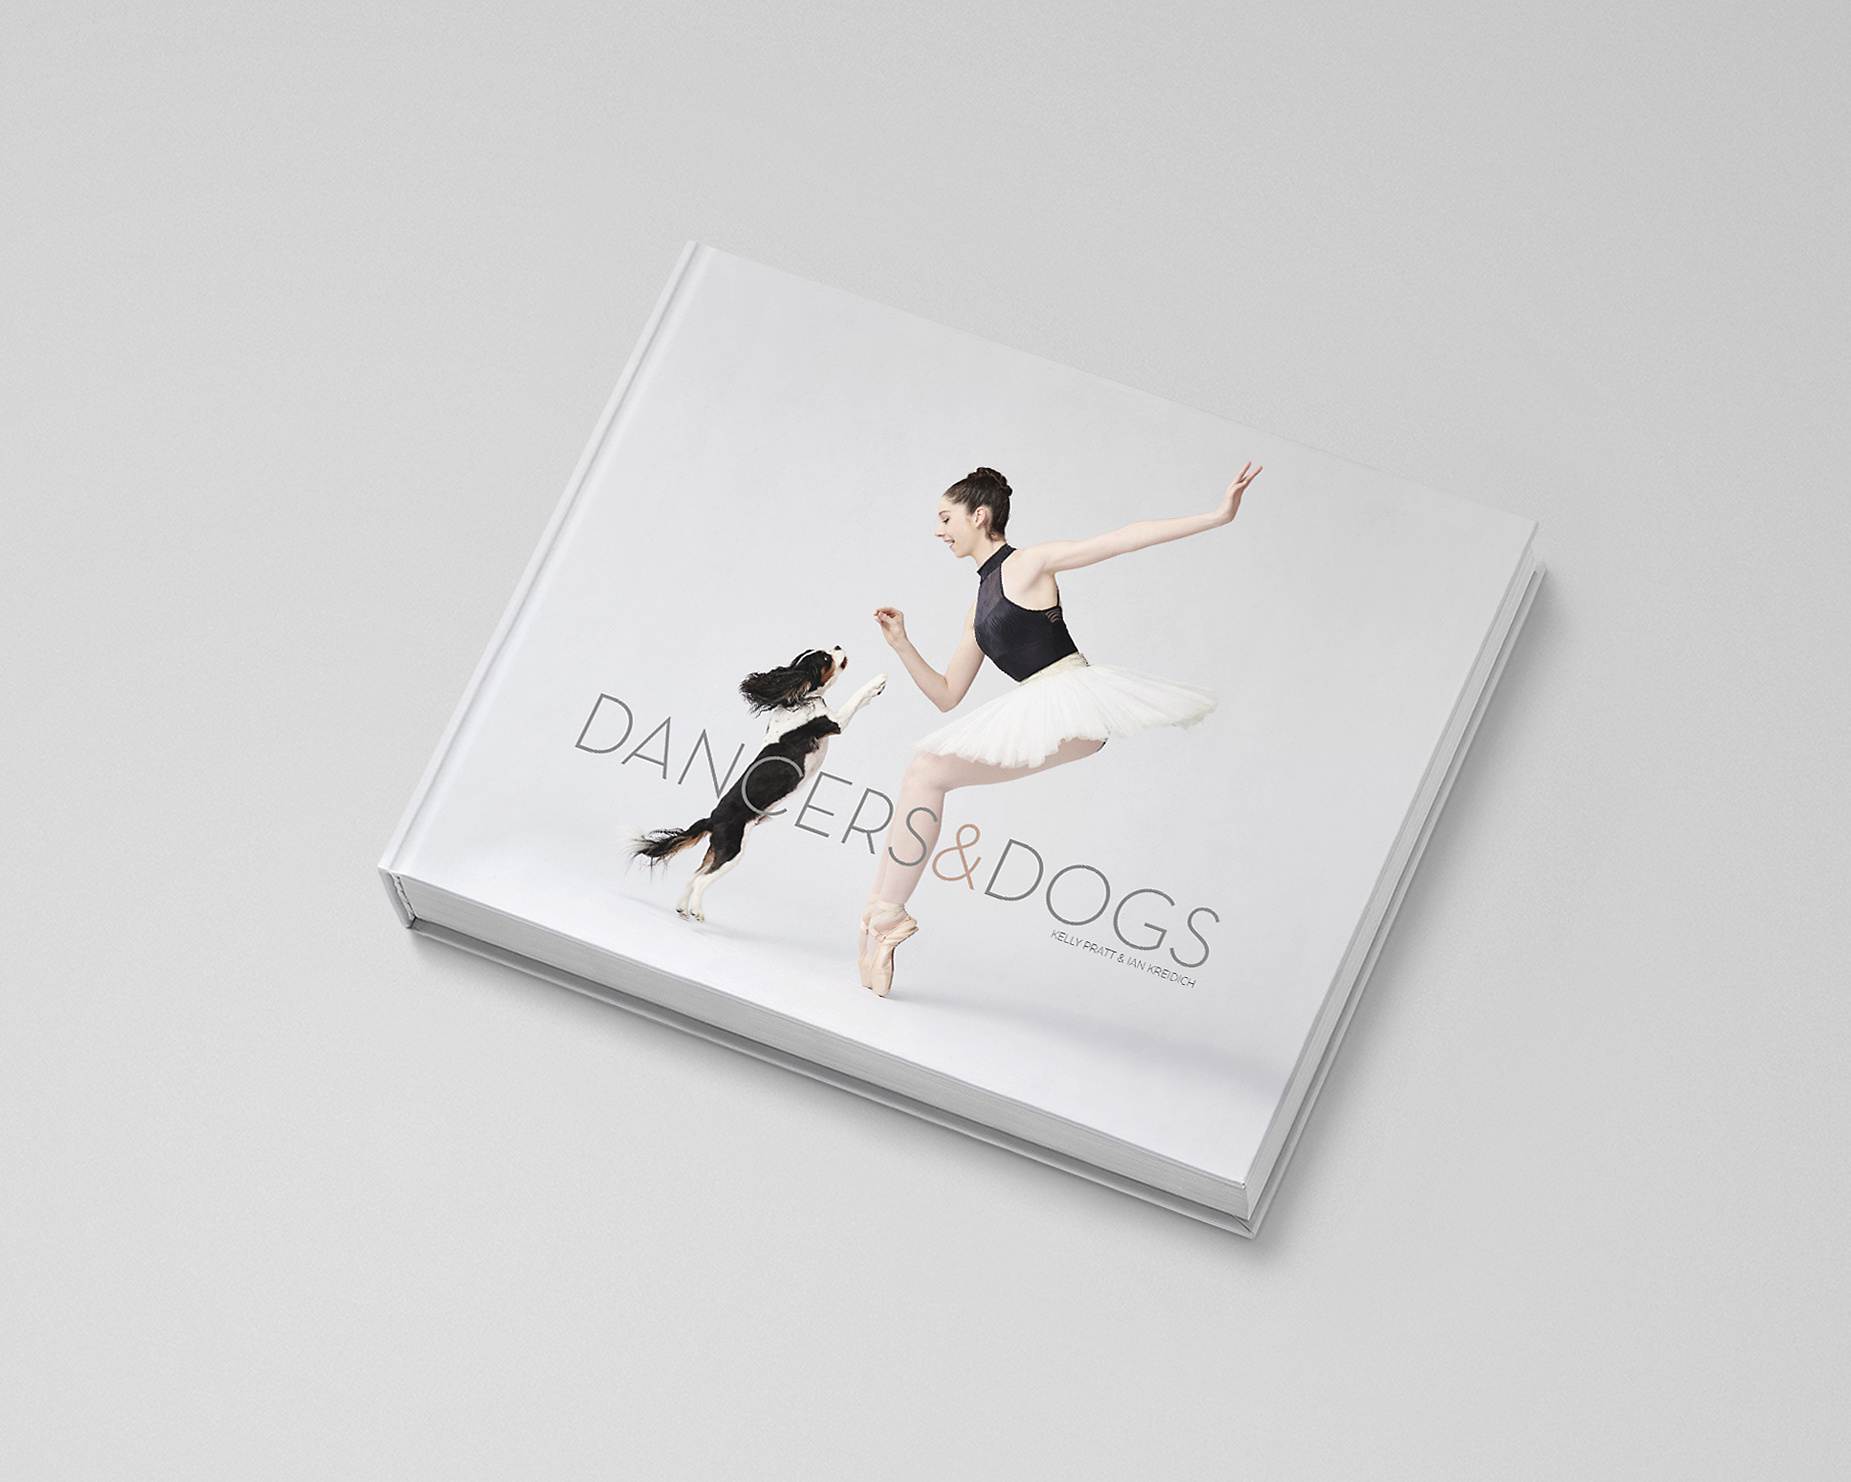 Win a Copy of Dancers & Dogs' New Coffee Table Book